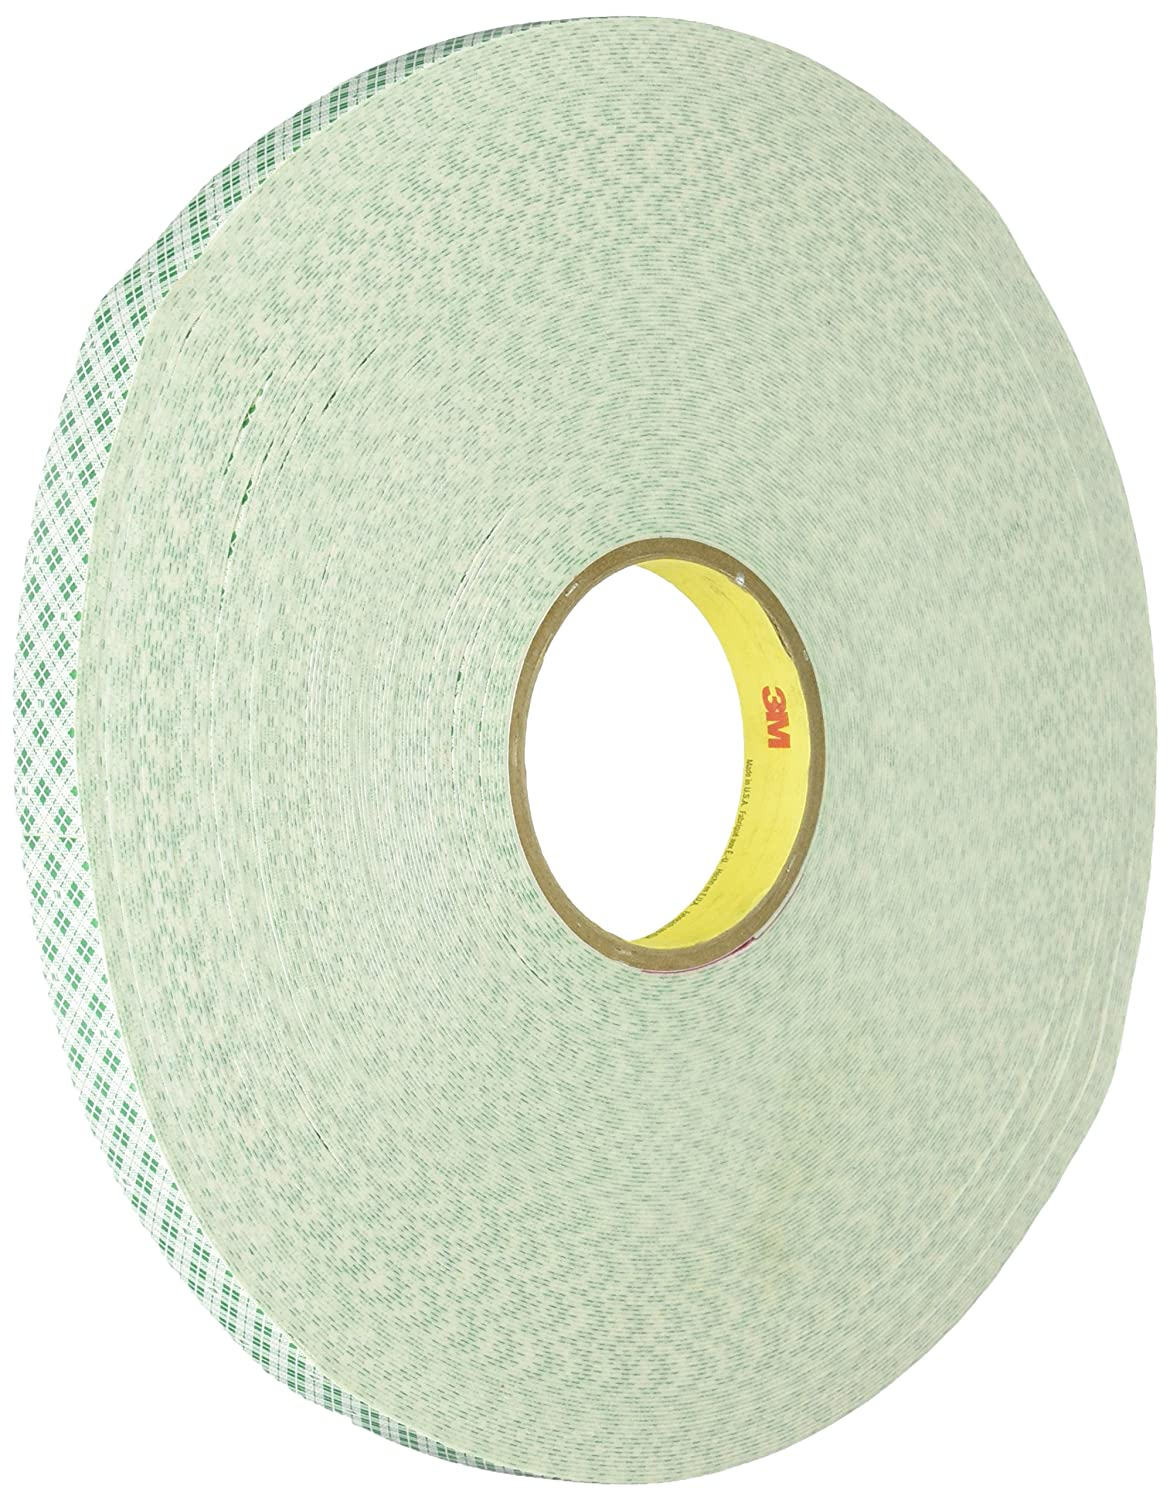 "3M 4032 Natural Polyurethane Double Coated Foam Tape, 1"" Width x 5yd Length (1 roll)"